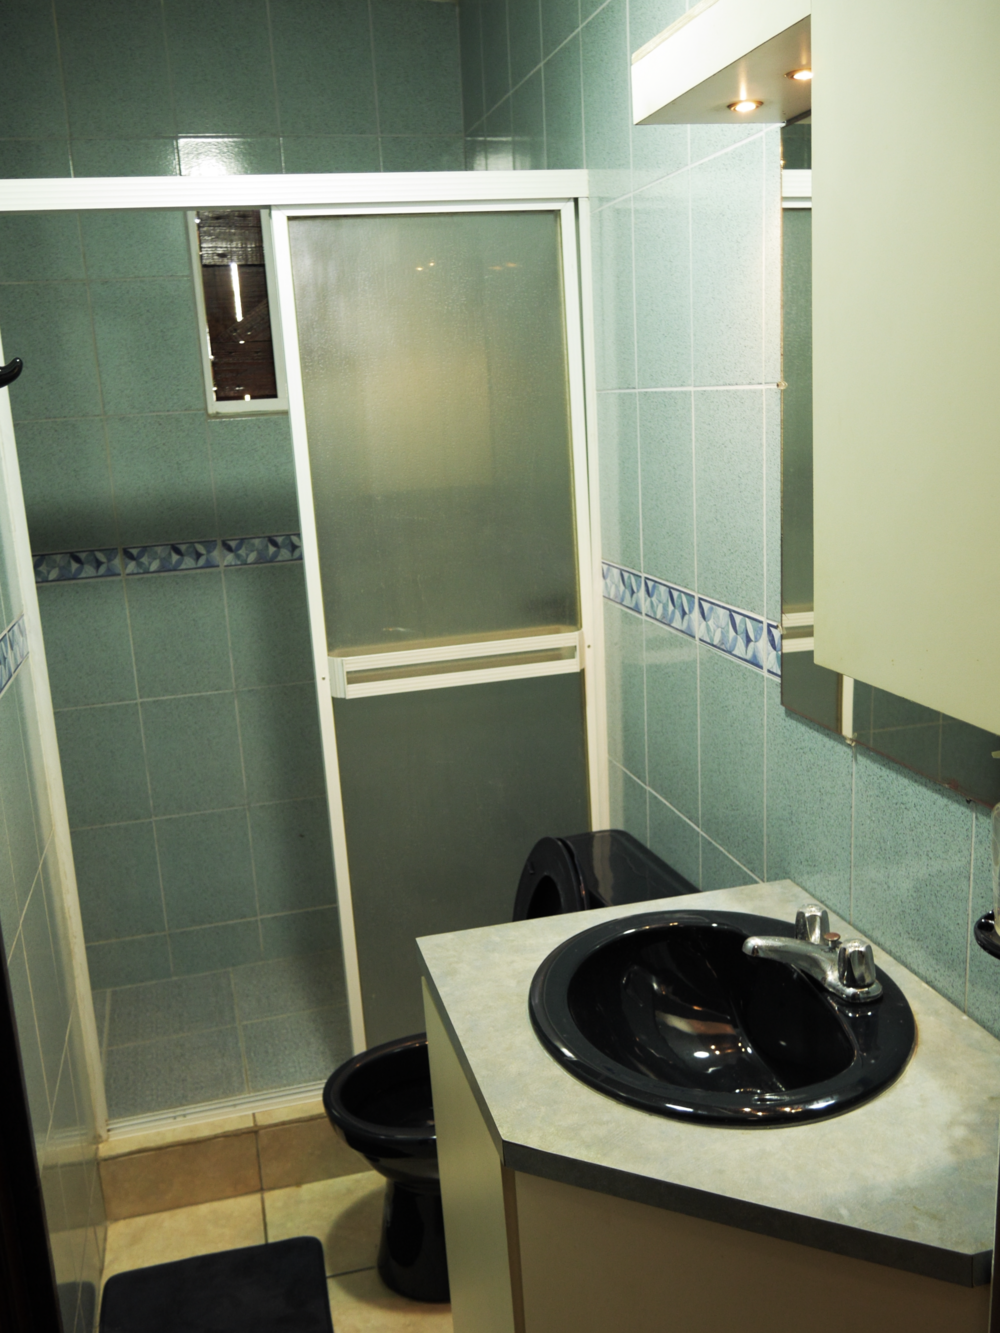 The spacious bathroom tiled in a caribbean fashion.